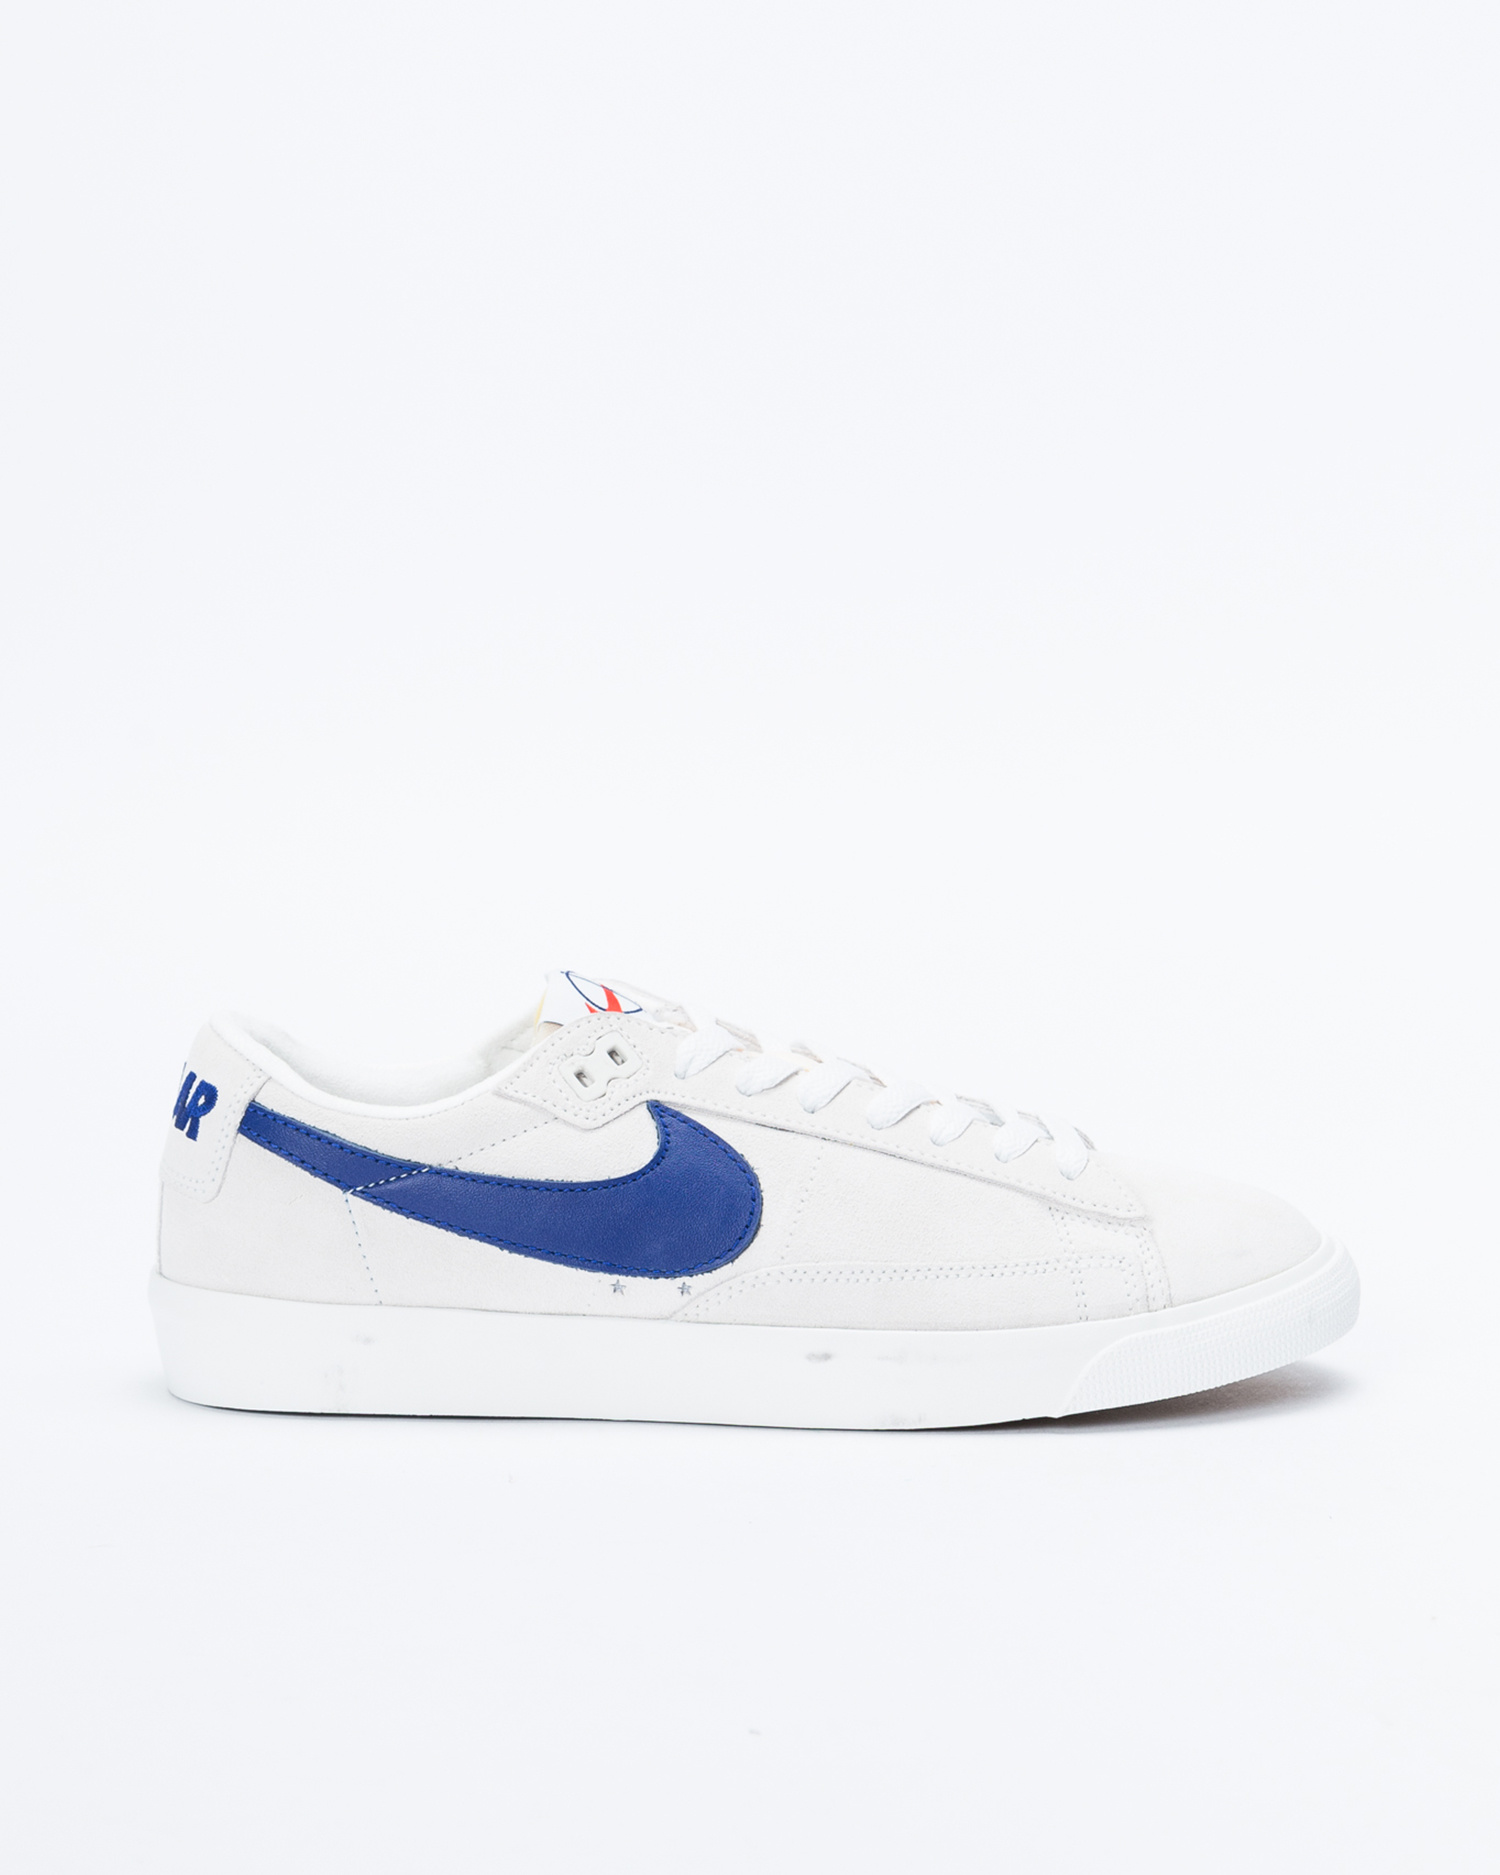 Nike SB X POLAR Zoom Blazer Low GT QS Summit White/Deep Royal Blue